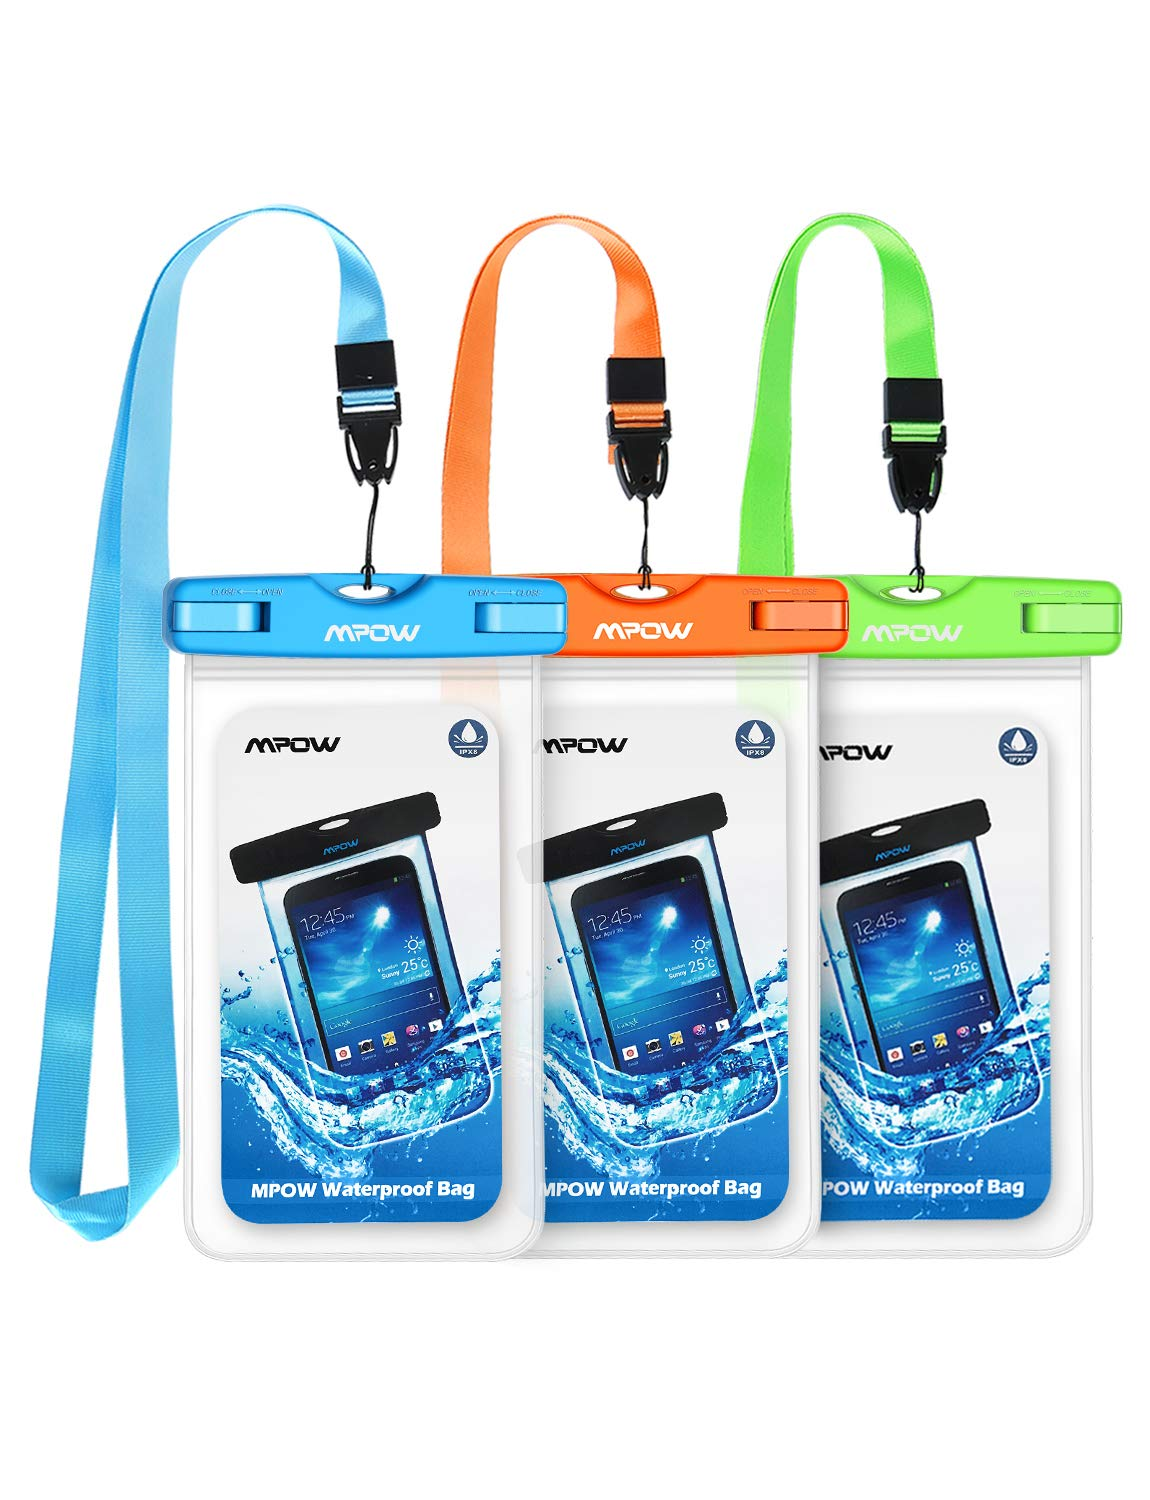 best website 47719 143ae Mpow 024 Waterproof Case, Universal IPX8 Waterproof Phone Pouch Underwater  Protective Dry Bag Compatible iPhone Xs Max/XS/XR/X/8/8P, Galaxy S10/S9, ...